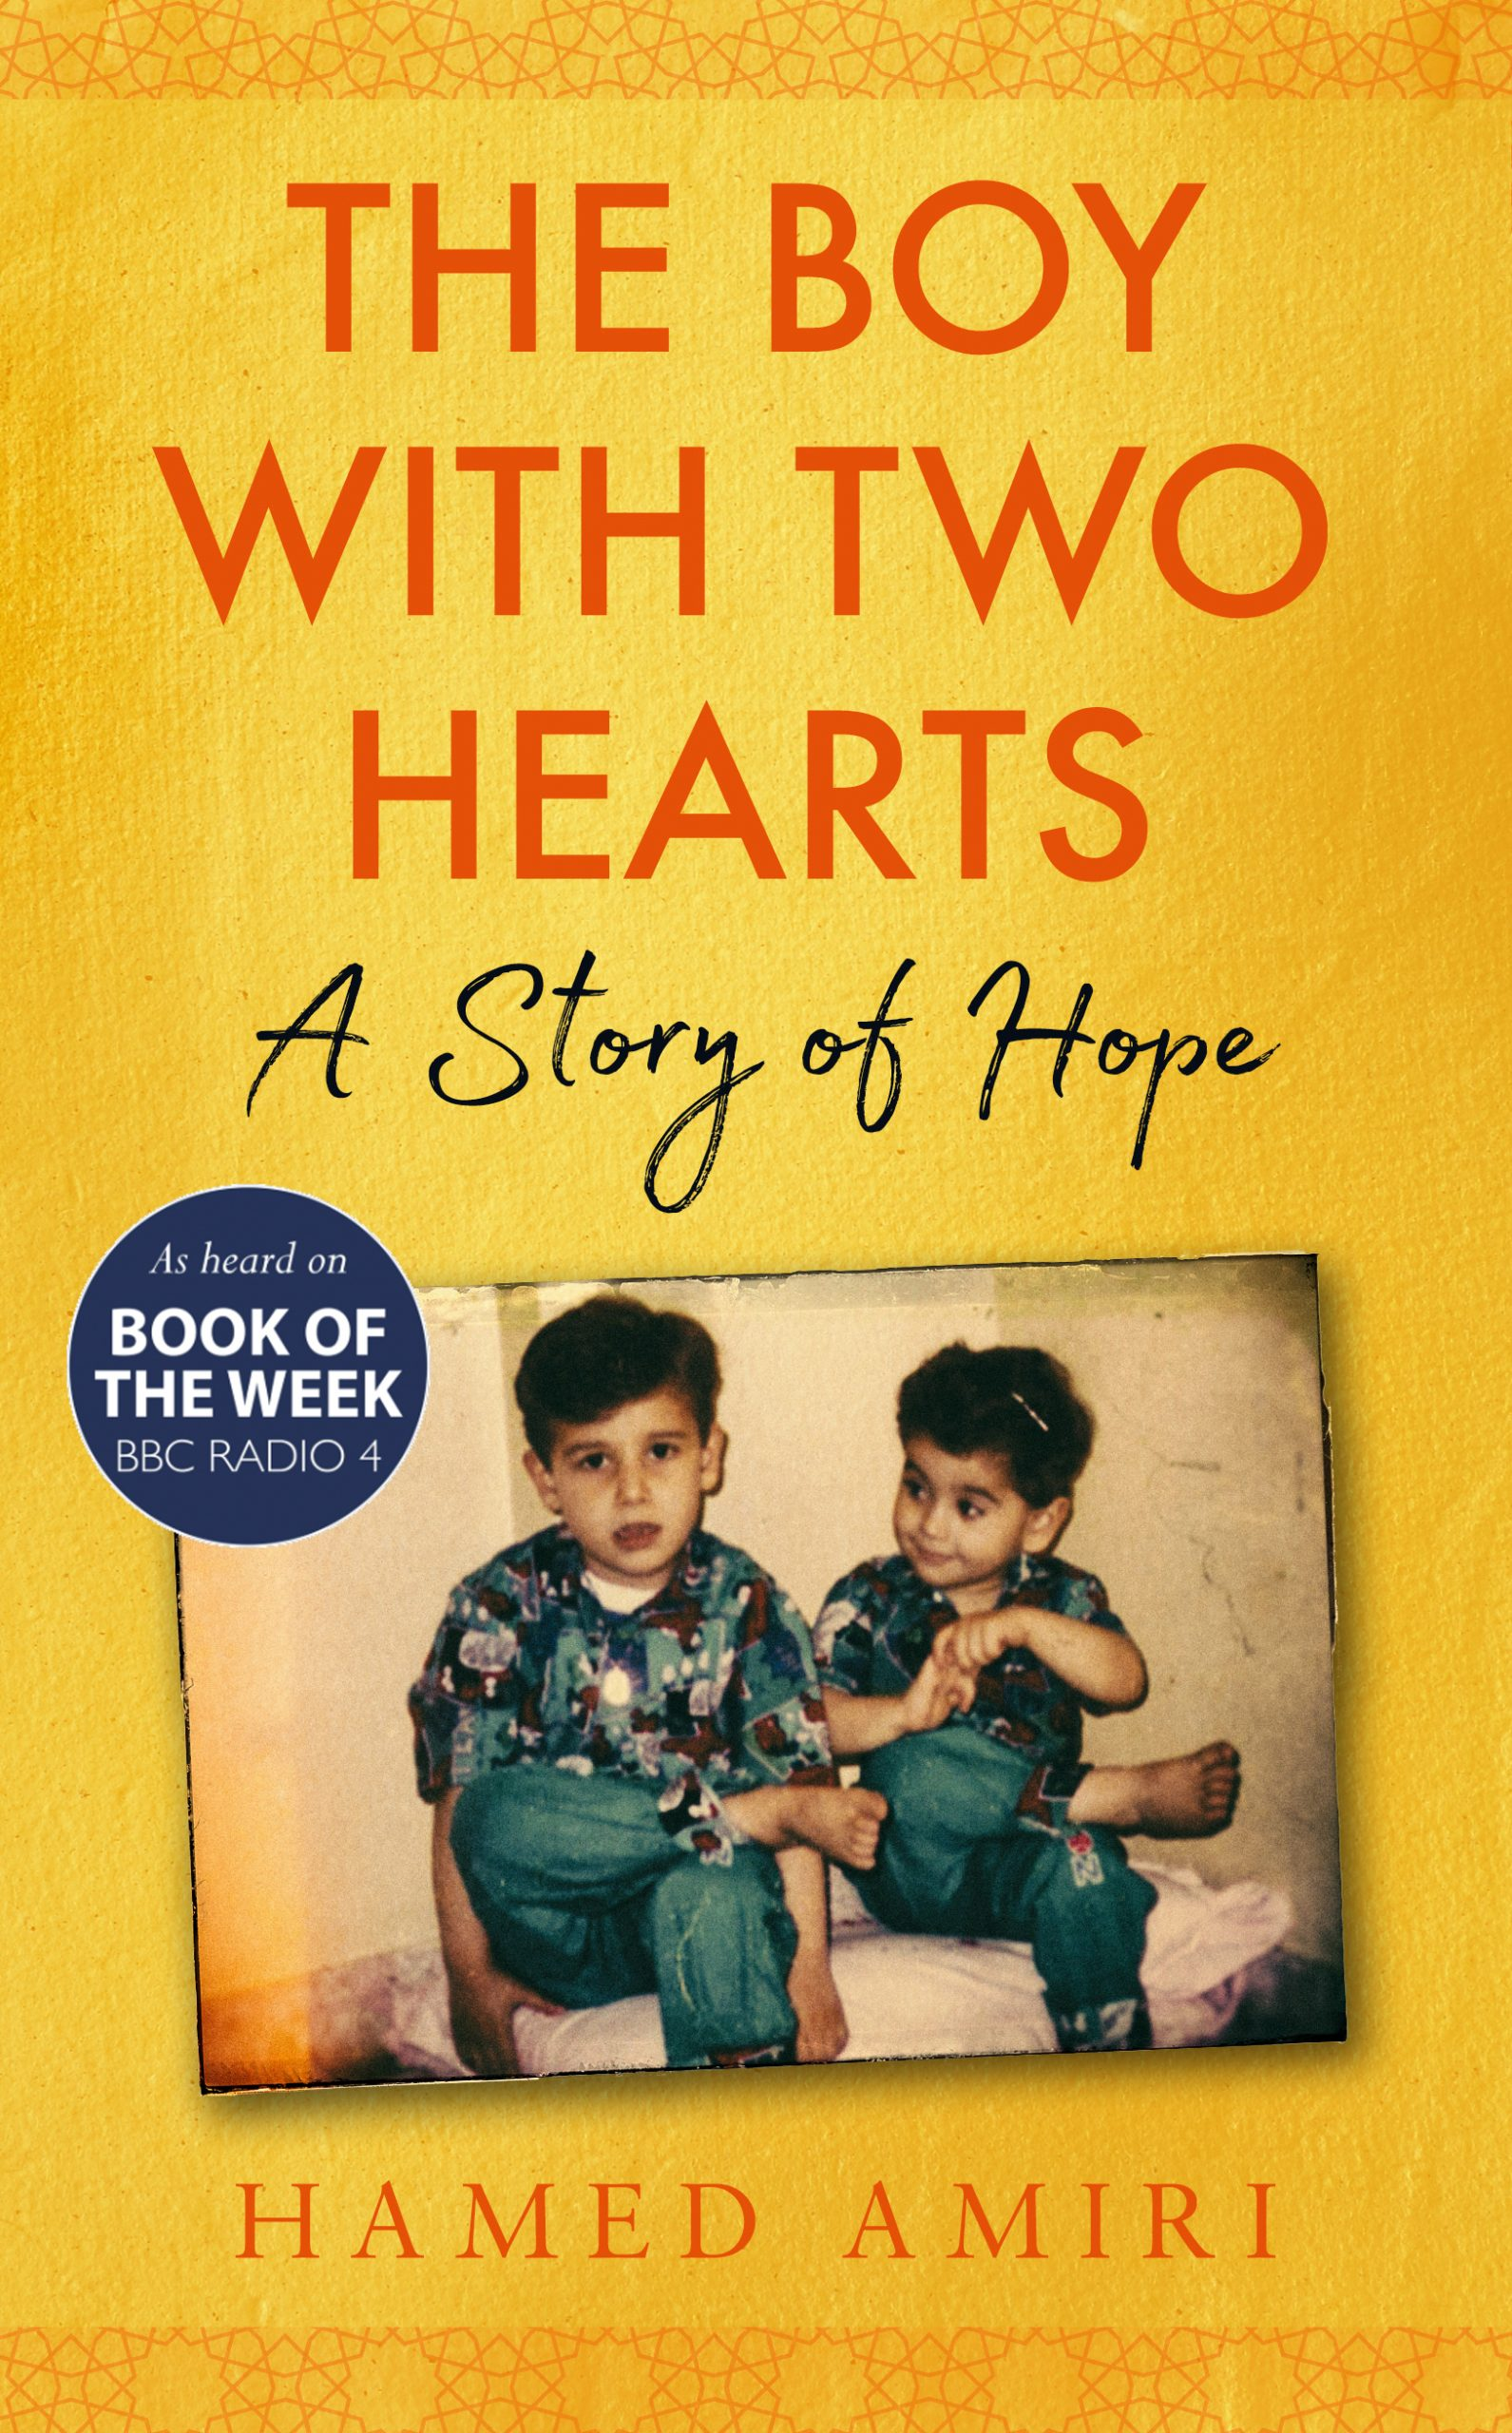 Book Review: The Boy with Two Hearts, by Hamed Amiri